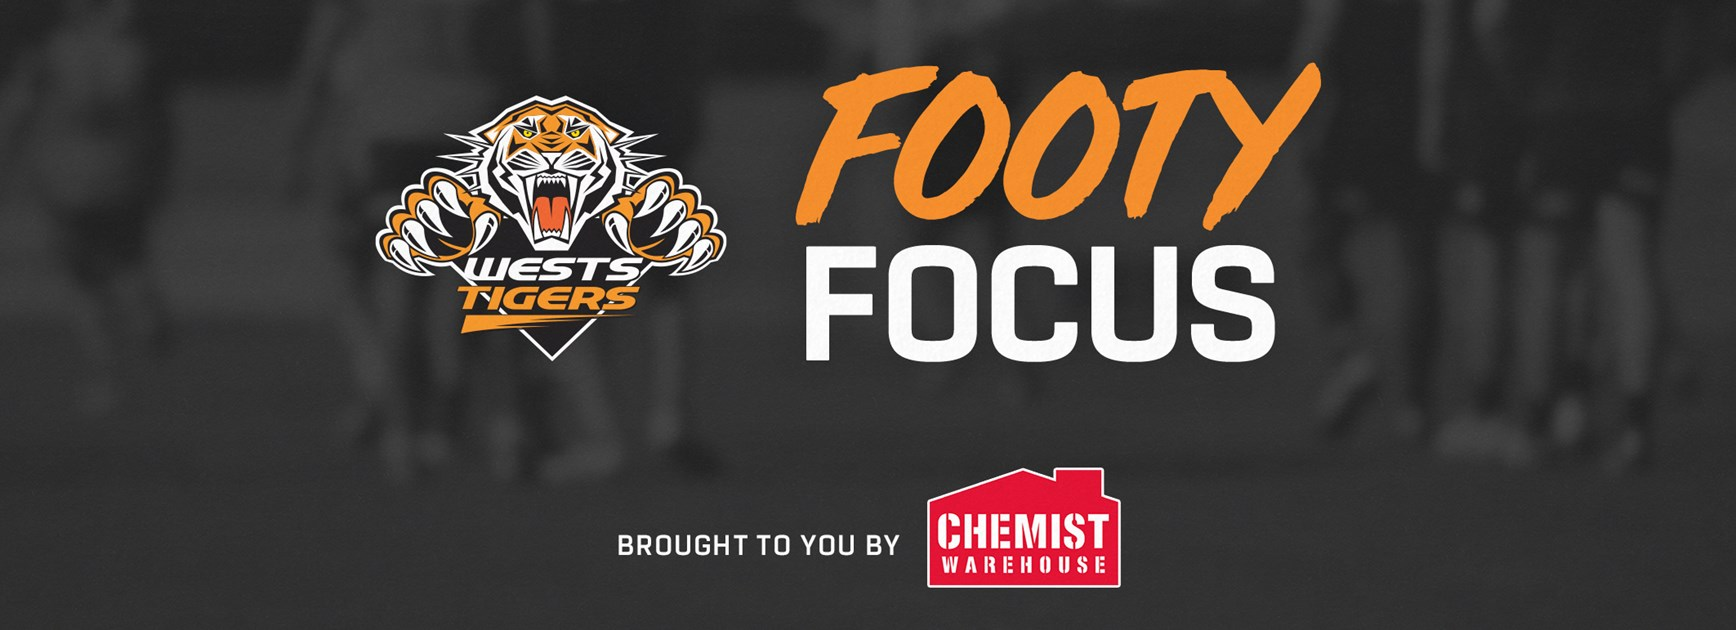 Chemist Warehouse Footy Focus: Round 5